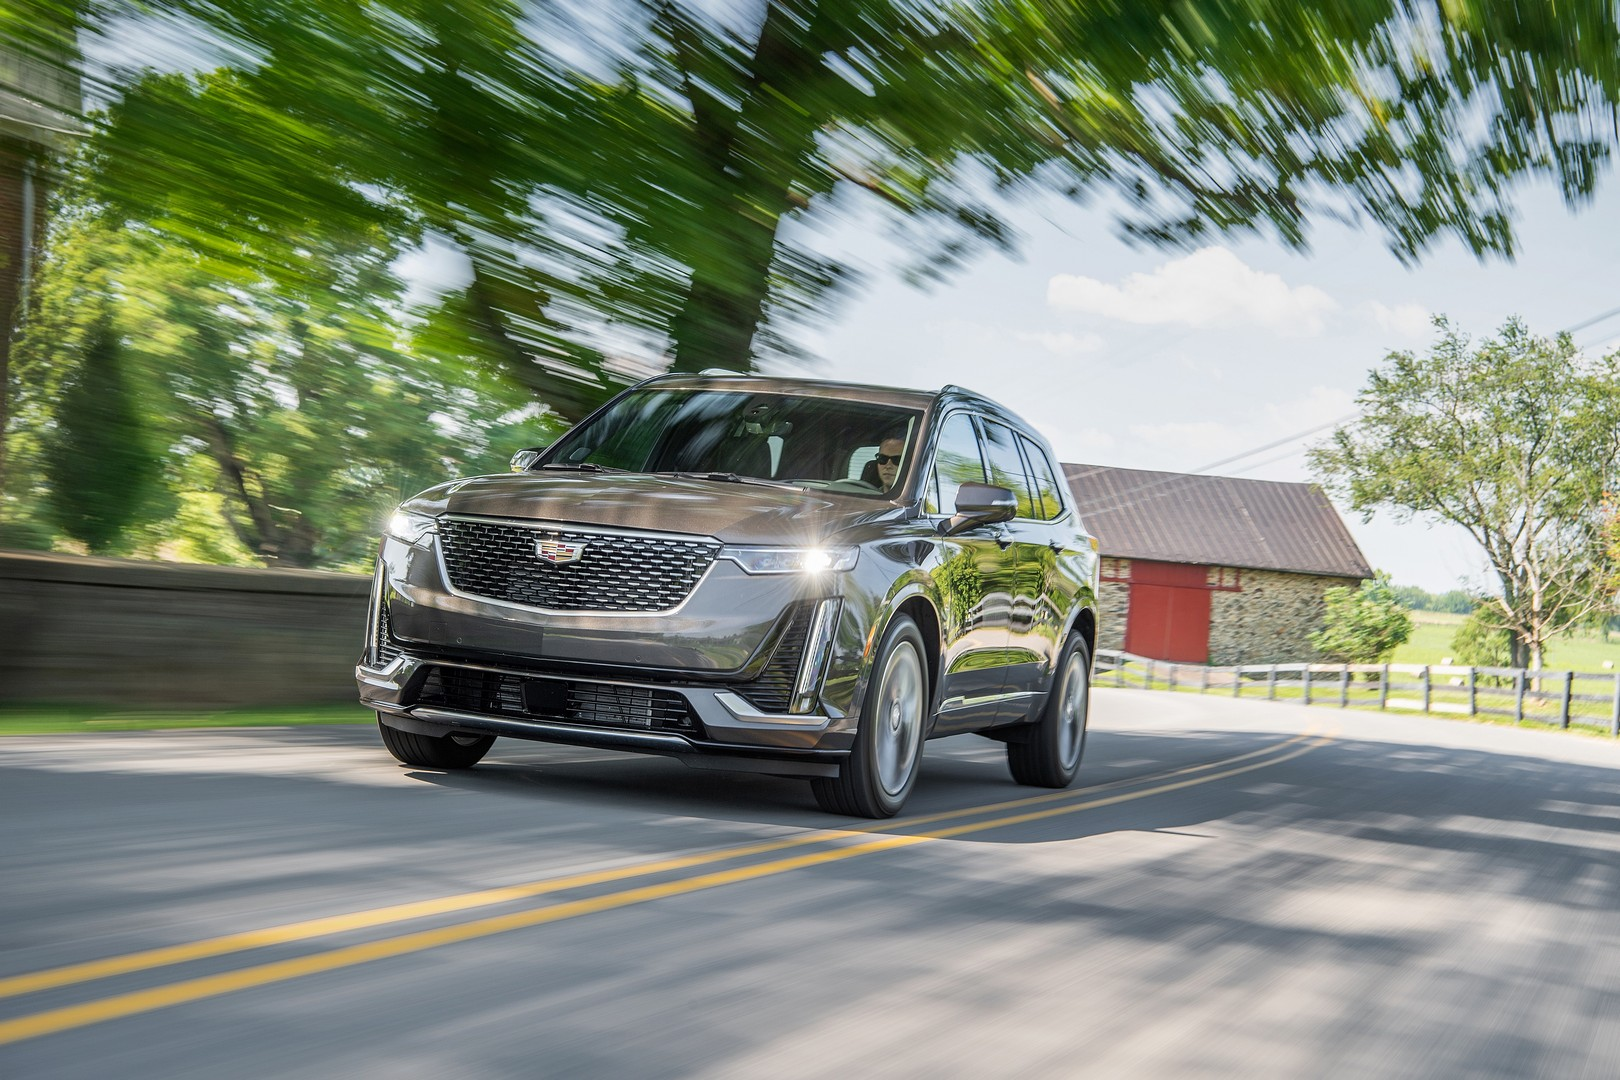 the 2021 cadillac xt6 arrives with new luxury trim on the